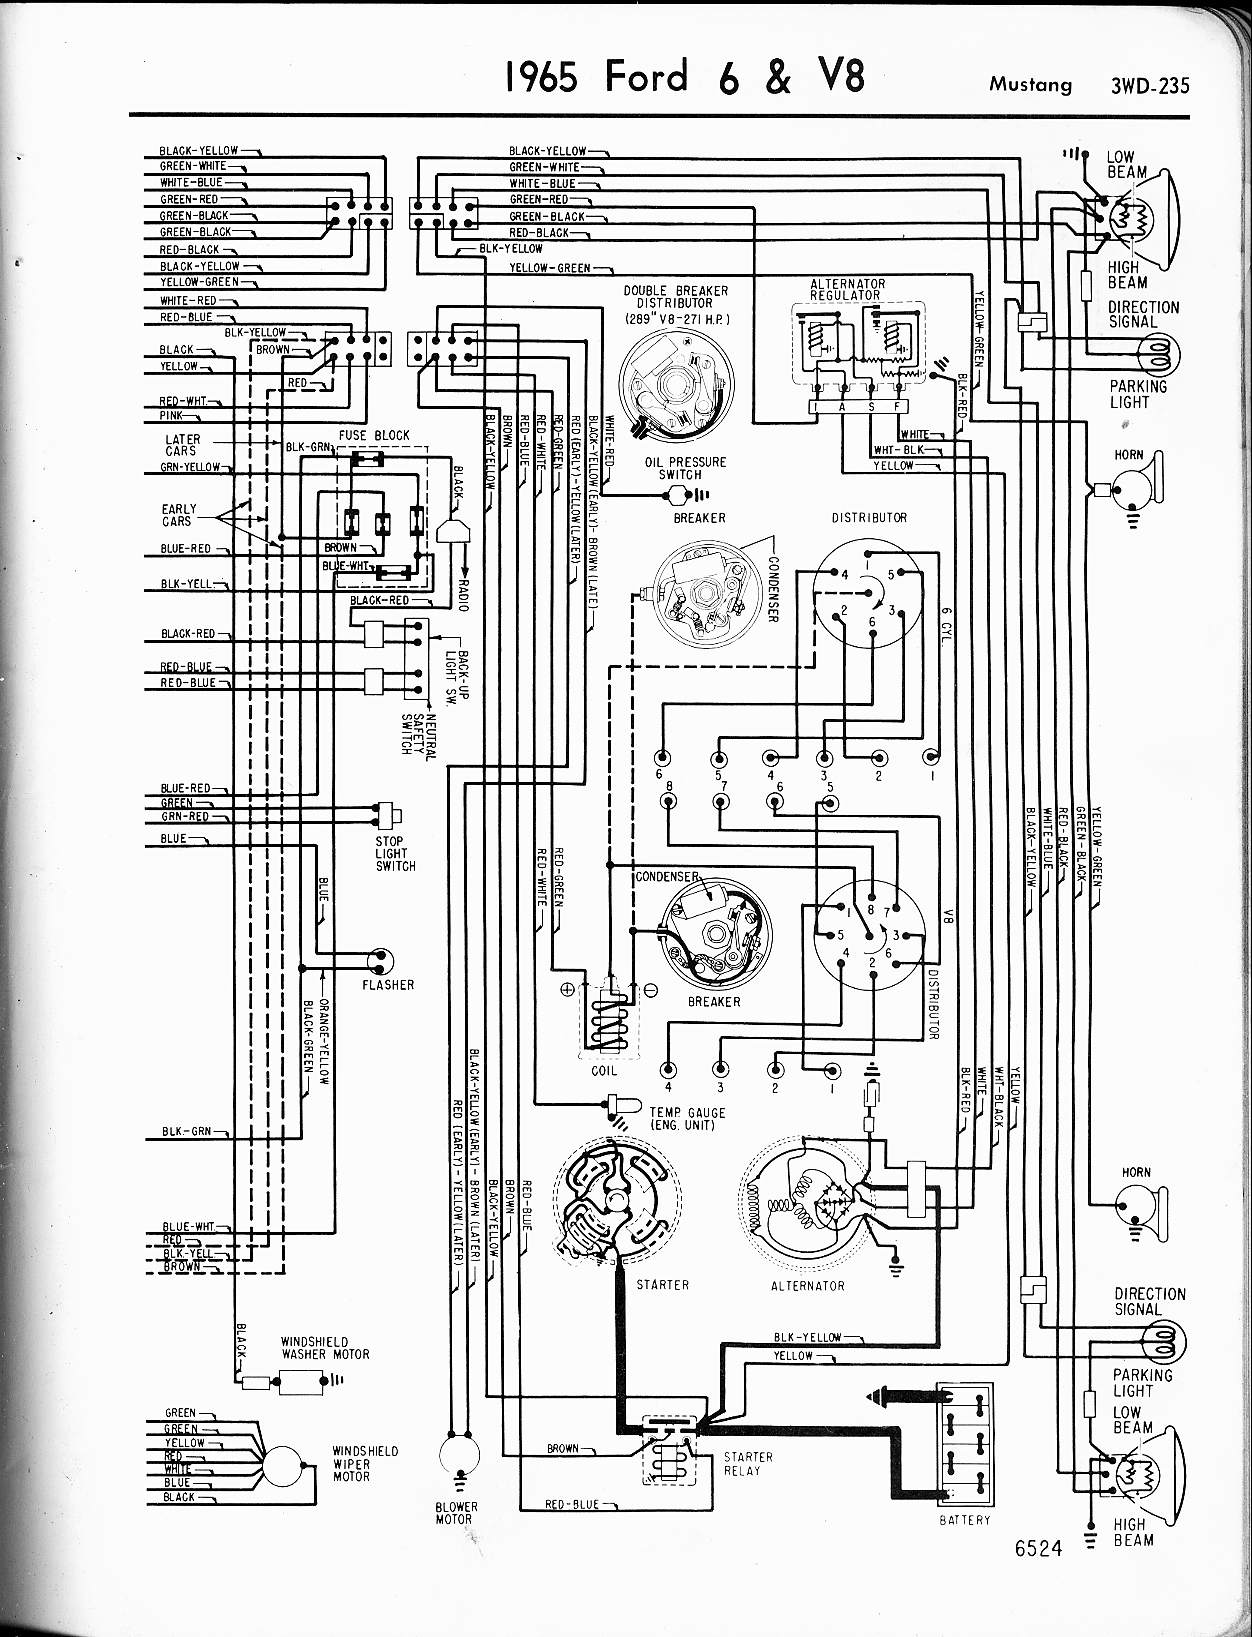 MWire5765 235 100 [ mustang horn wiring diagram ] 63 impala fuse box on 63 1969 mustang wiring harness at reclaimingppi.co